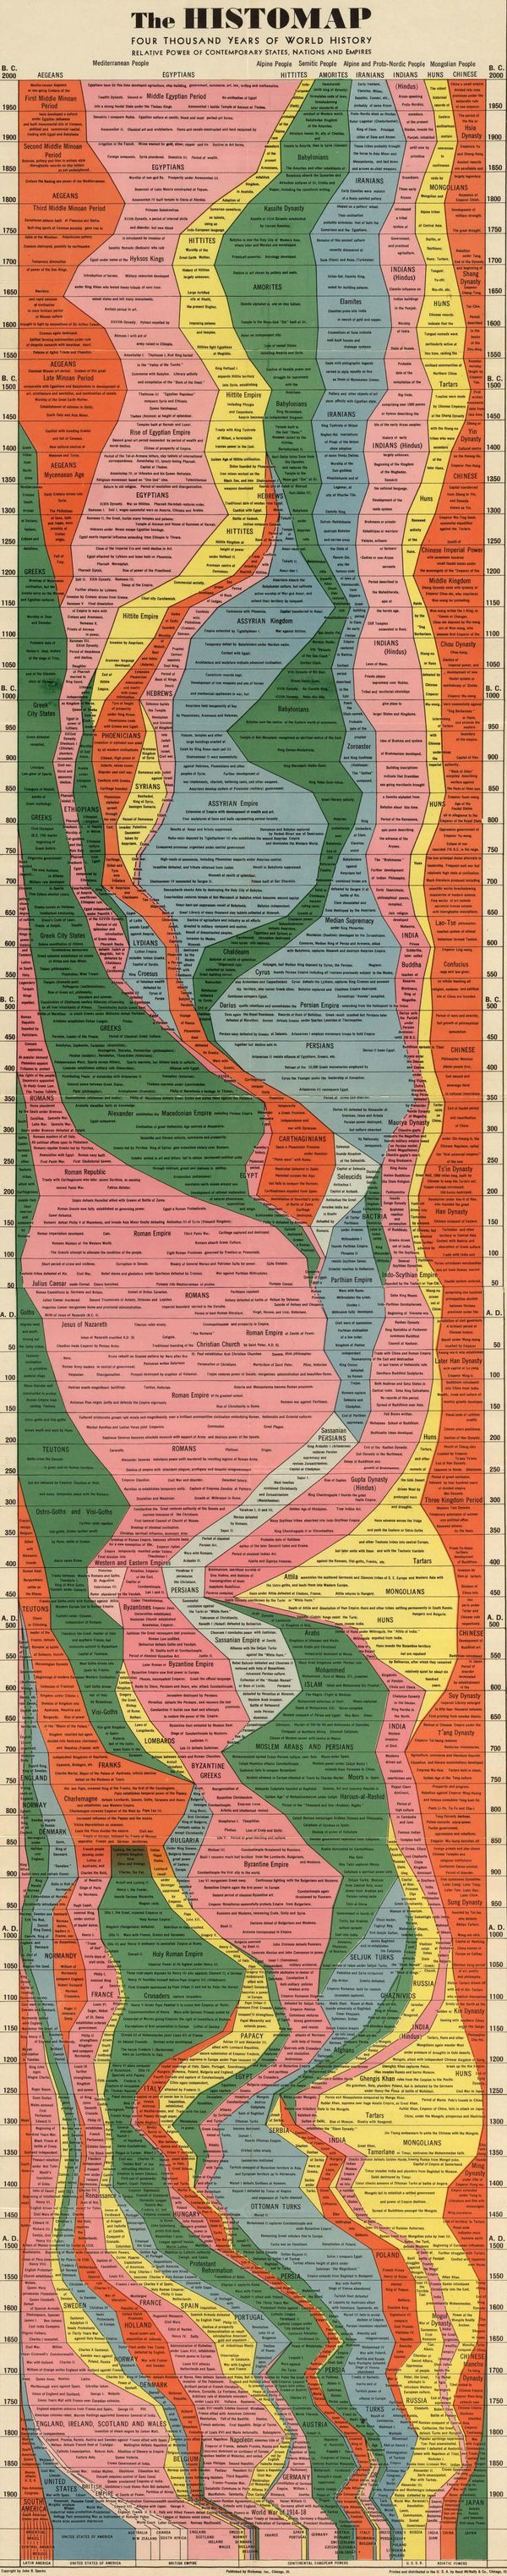 The Histomap: 4,000 Years of World History